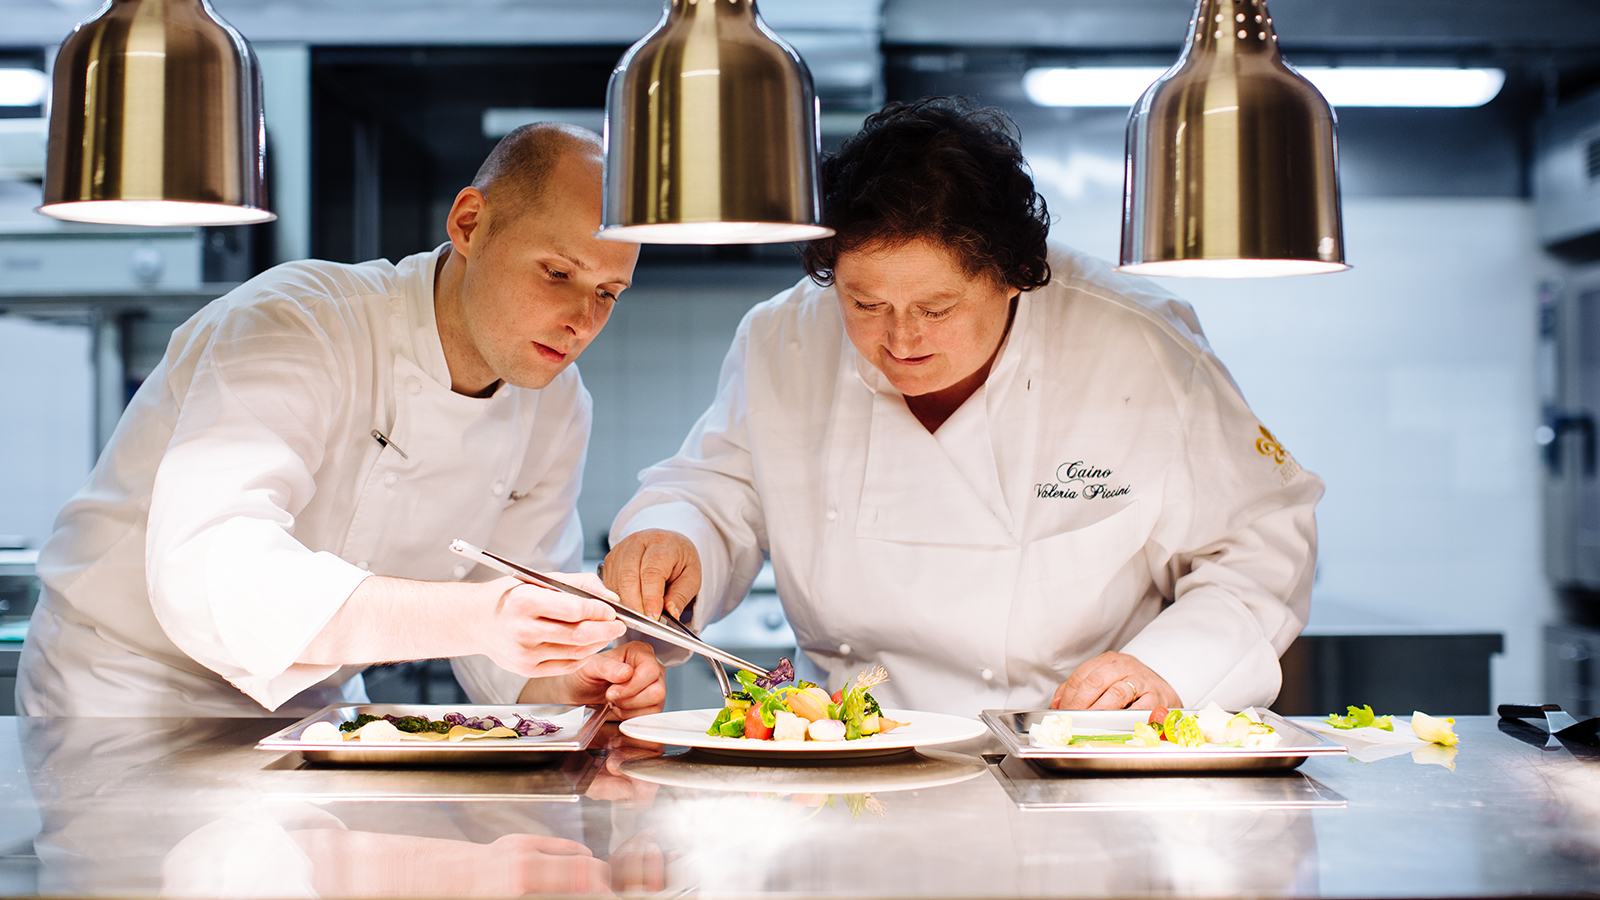 Valeria Piccini and Michele Griglio in the kitchen